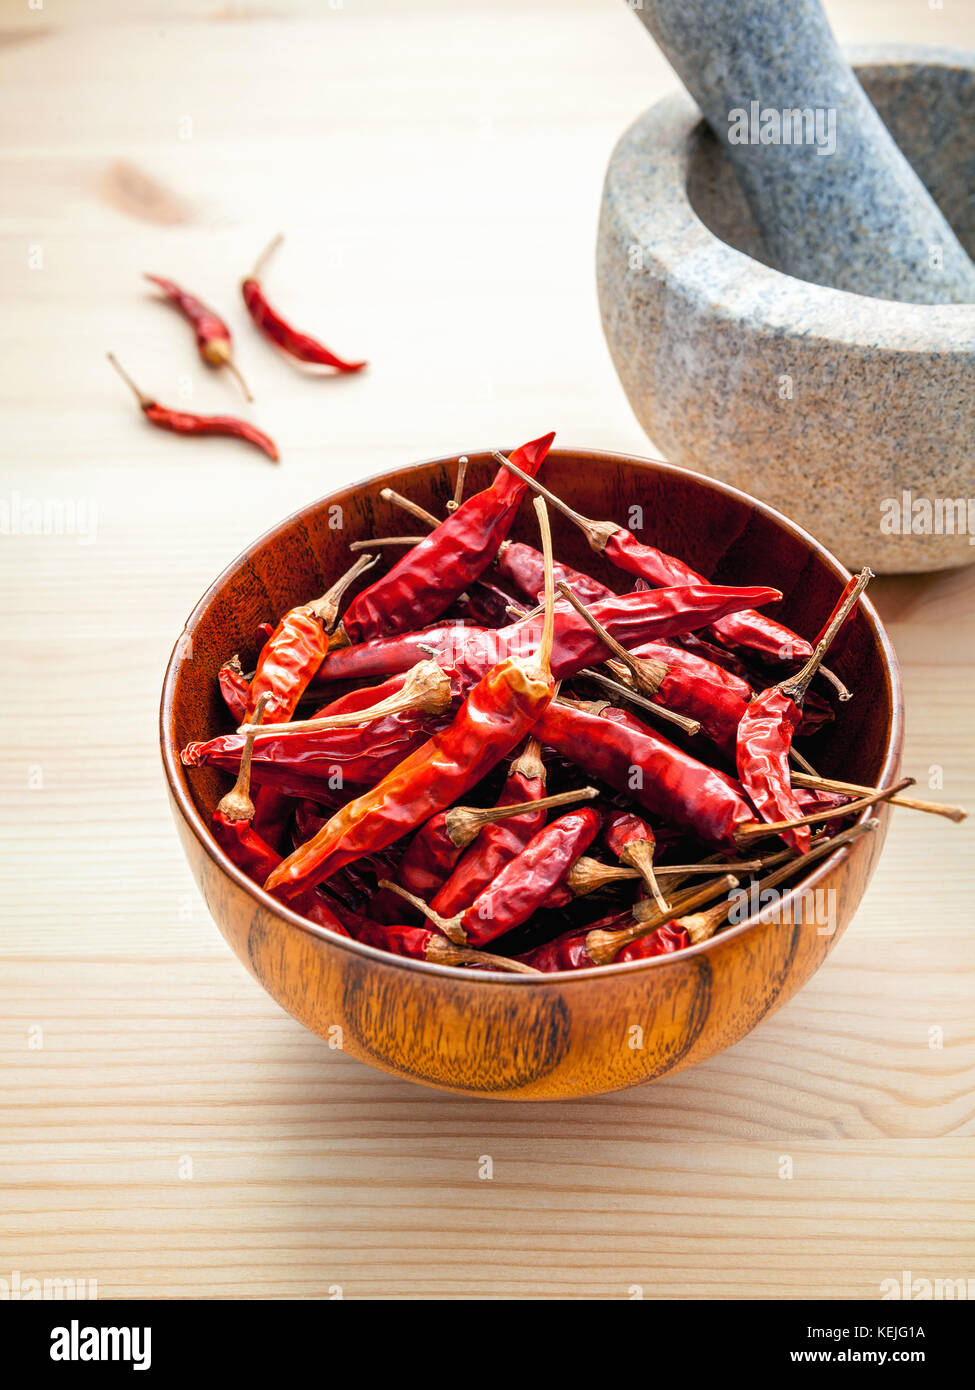 Dried Chillies on white wooden background with mortar and pestle. Selective focus depth of field. - Stock Image